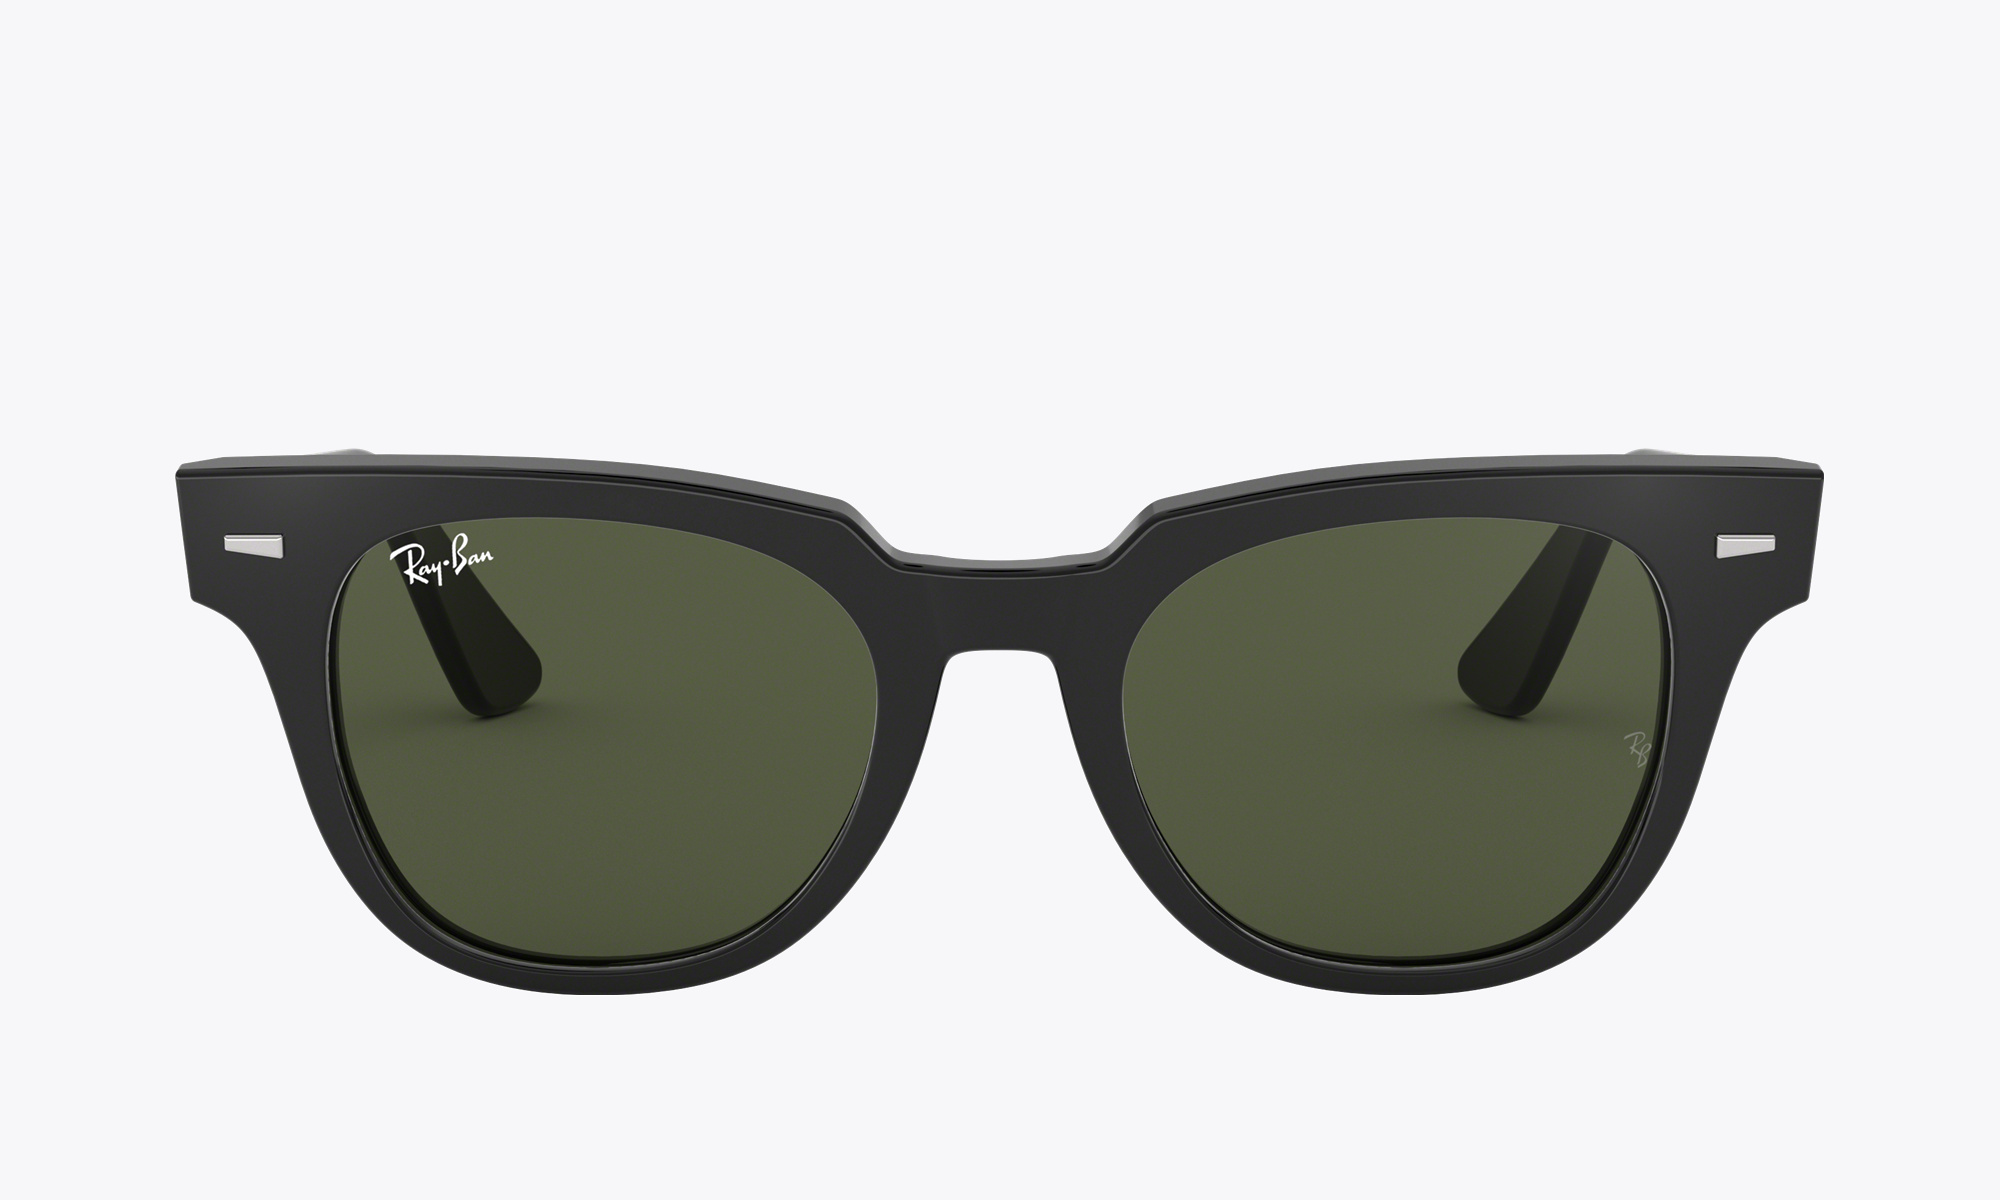 Image of Ray-Ban METEOR CLASSIC color Black